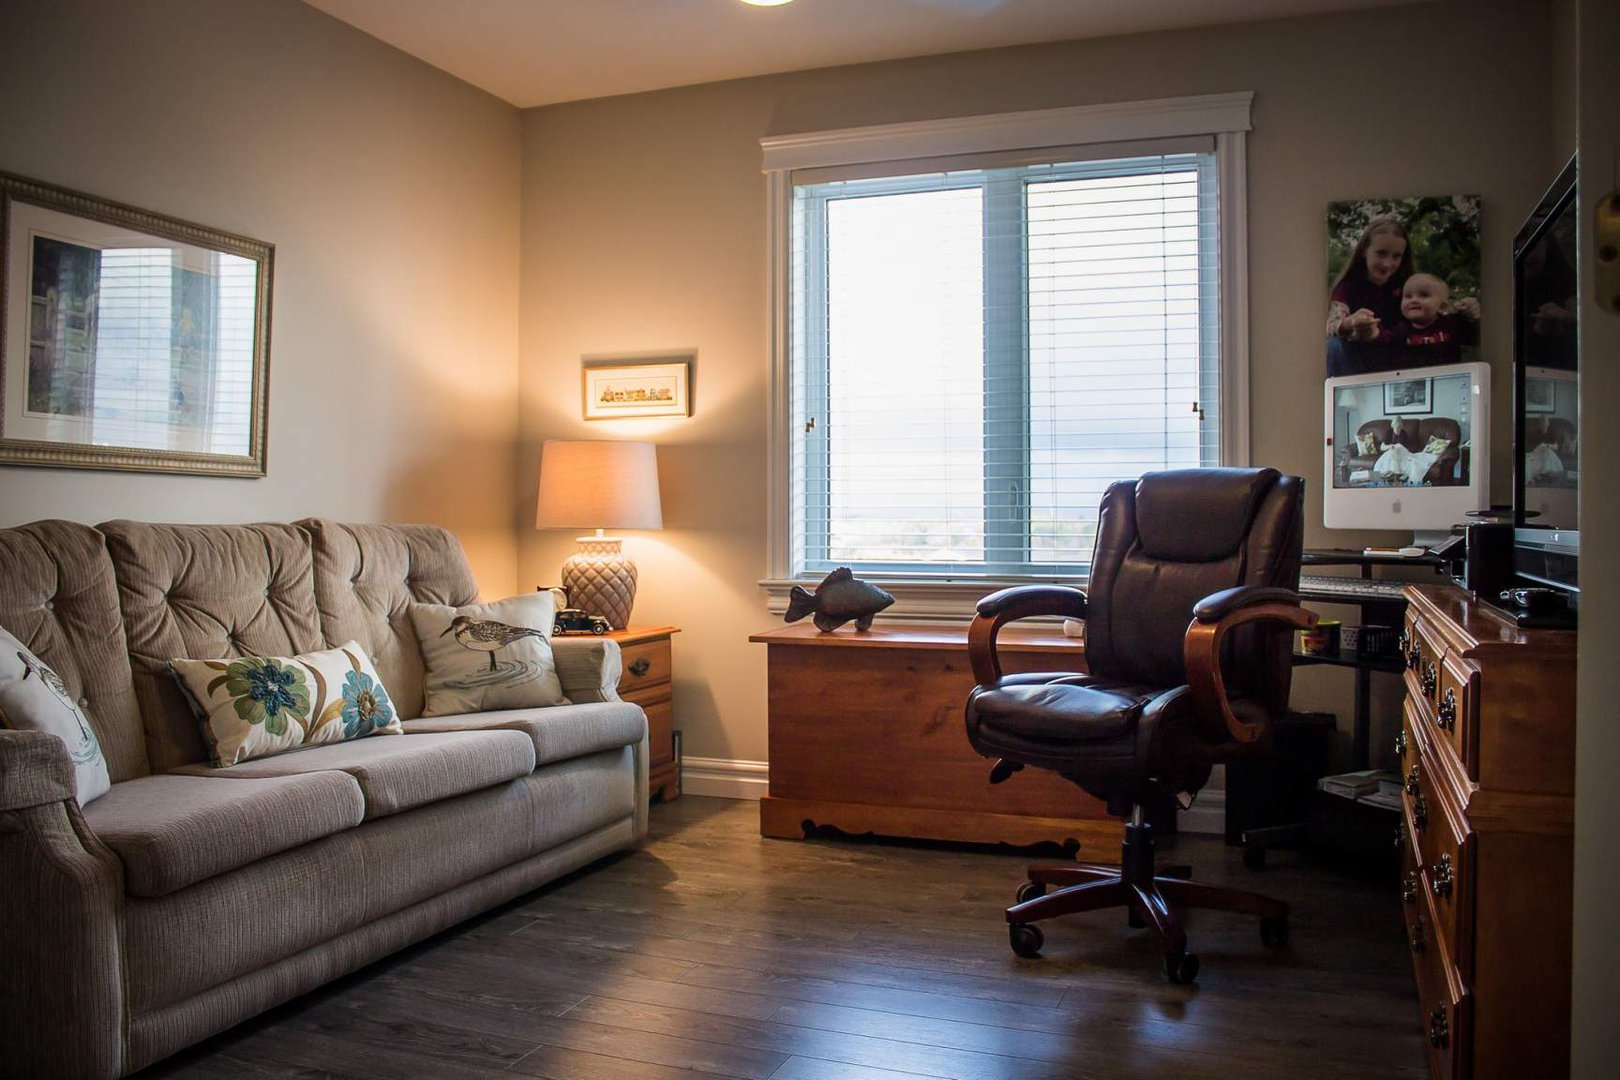 Mid-Rise-Apartment for rent at 747 Coverdale Road, Moncton, NB. This is the office with natural light and hardwood floor.